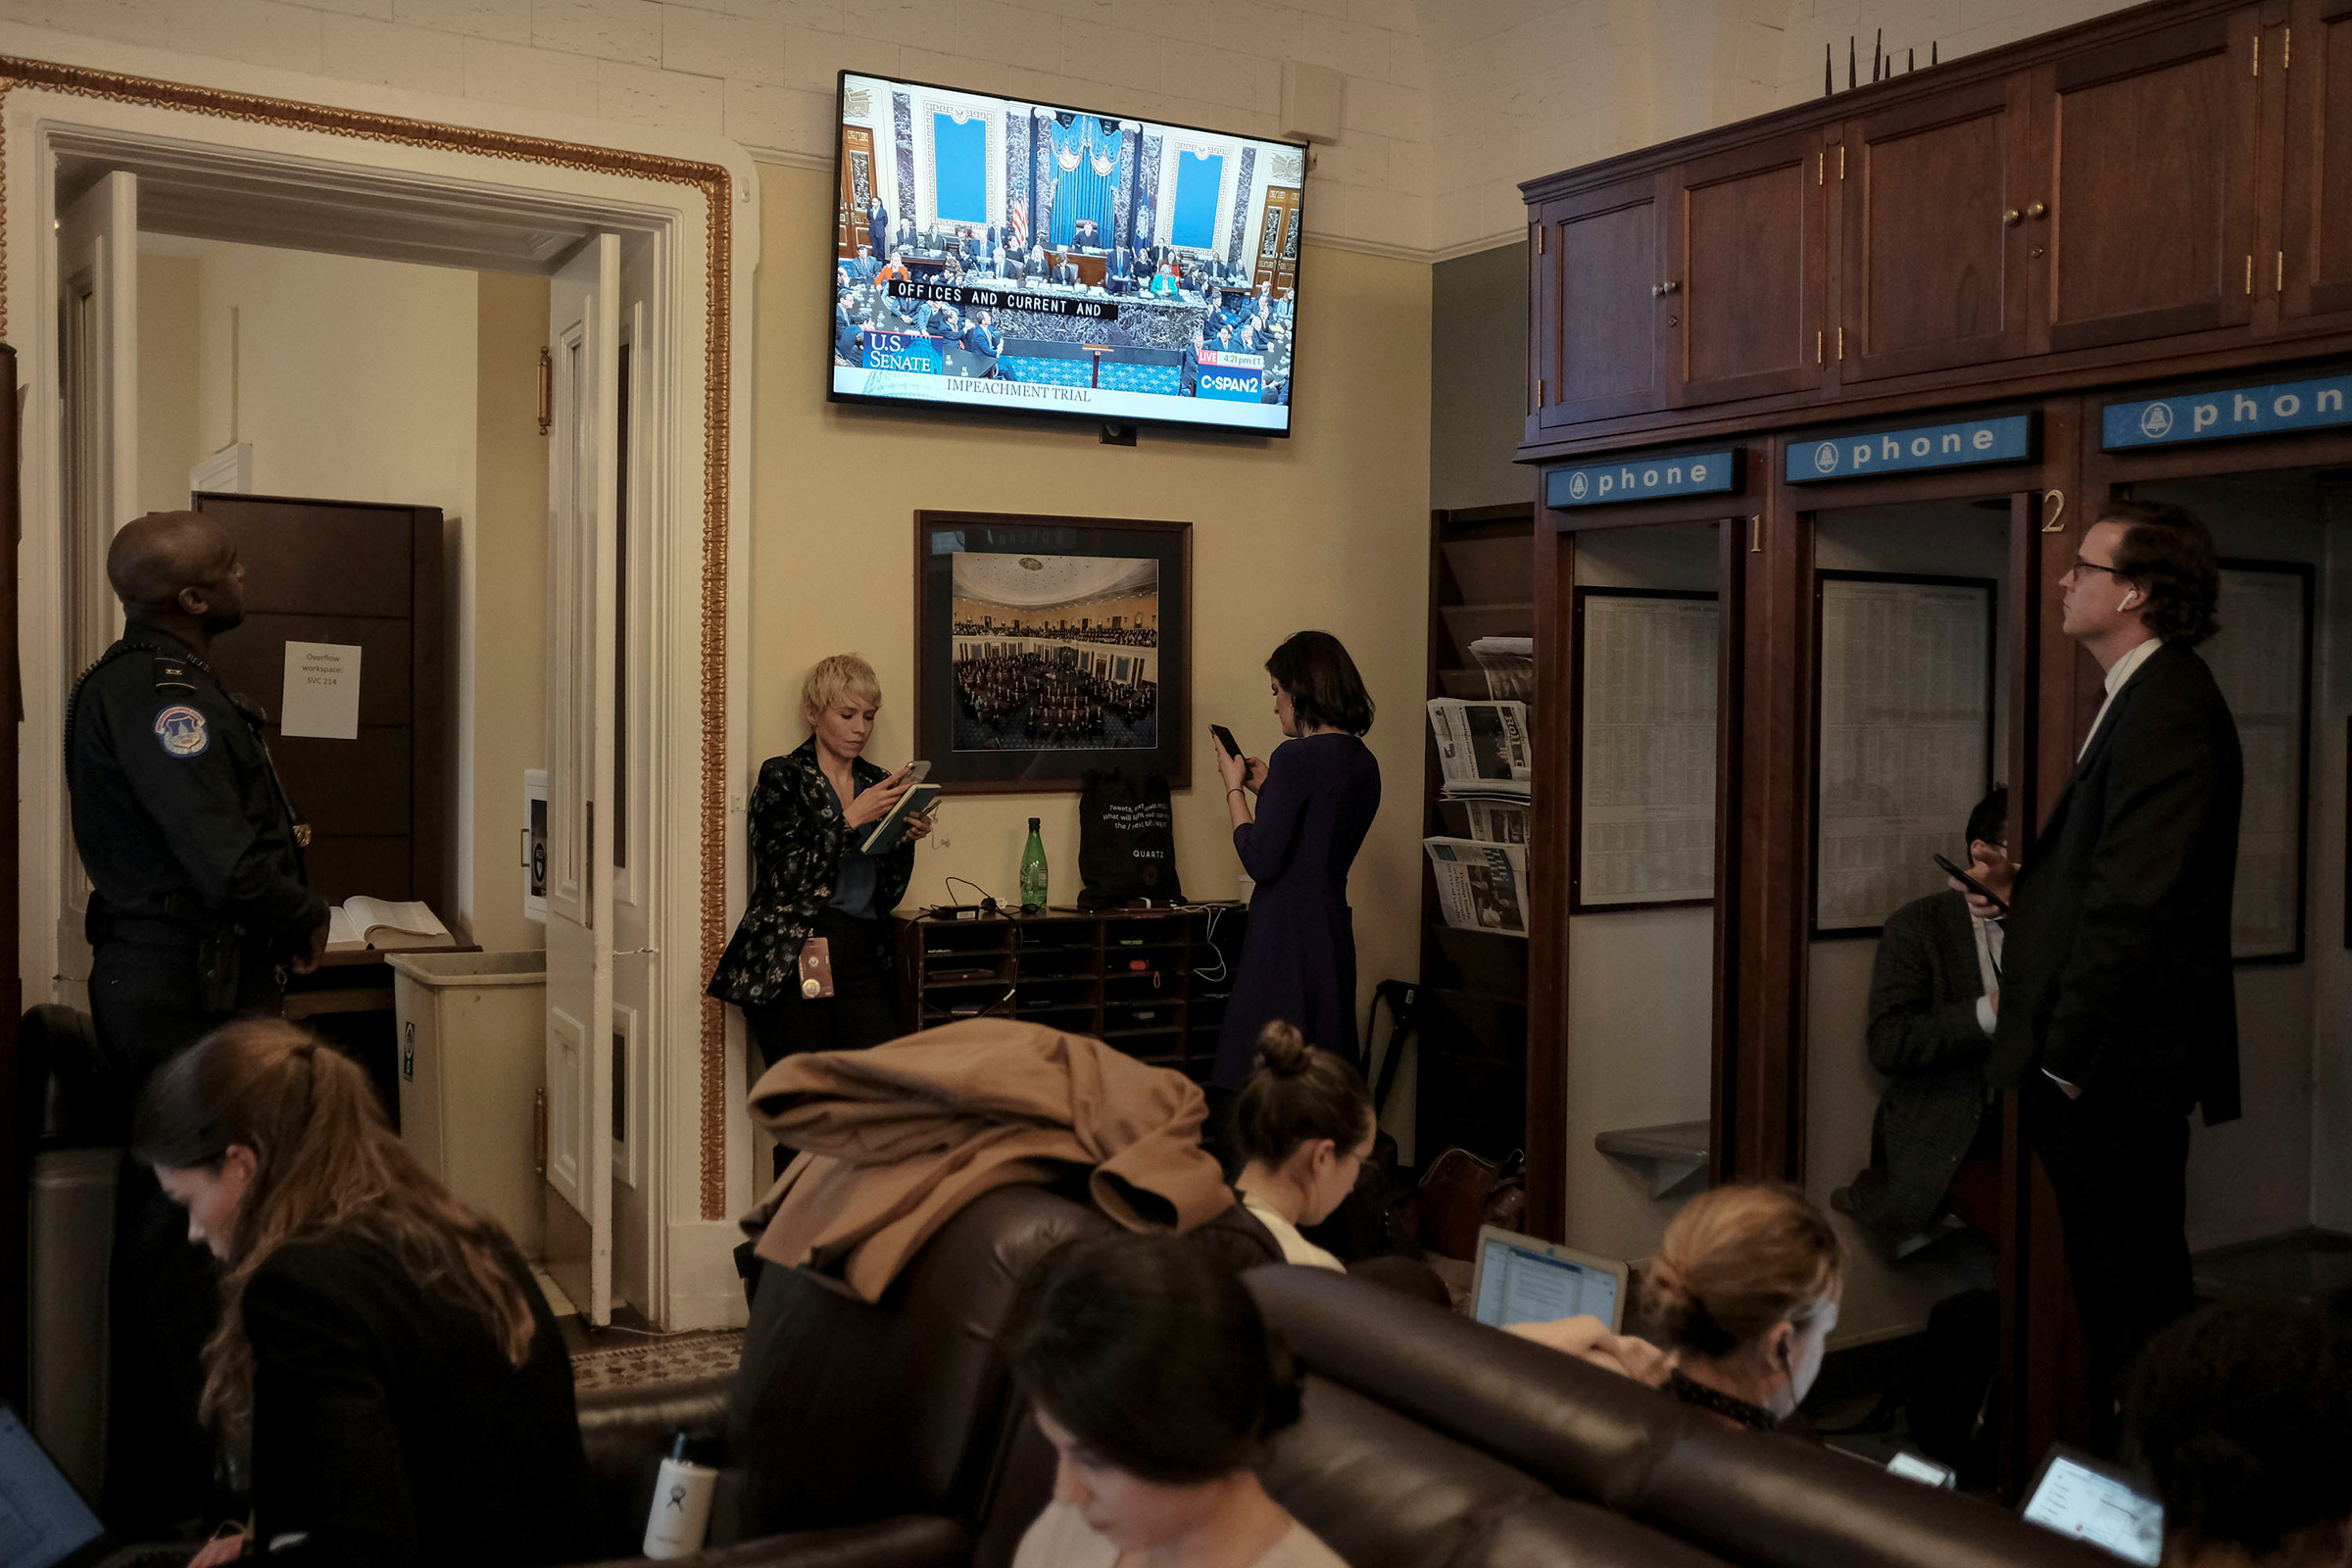 Reporters watch the Senate impeachment vote in the press gallery at the Capitol in Washington, D.C., on Feb. 5.